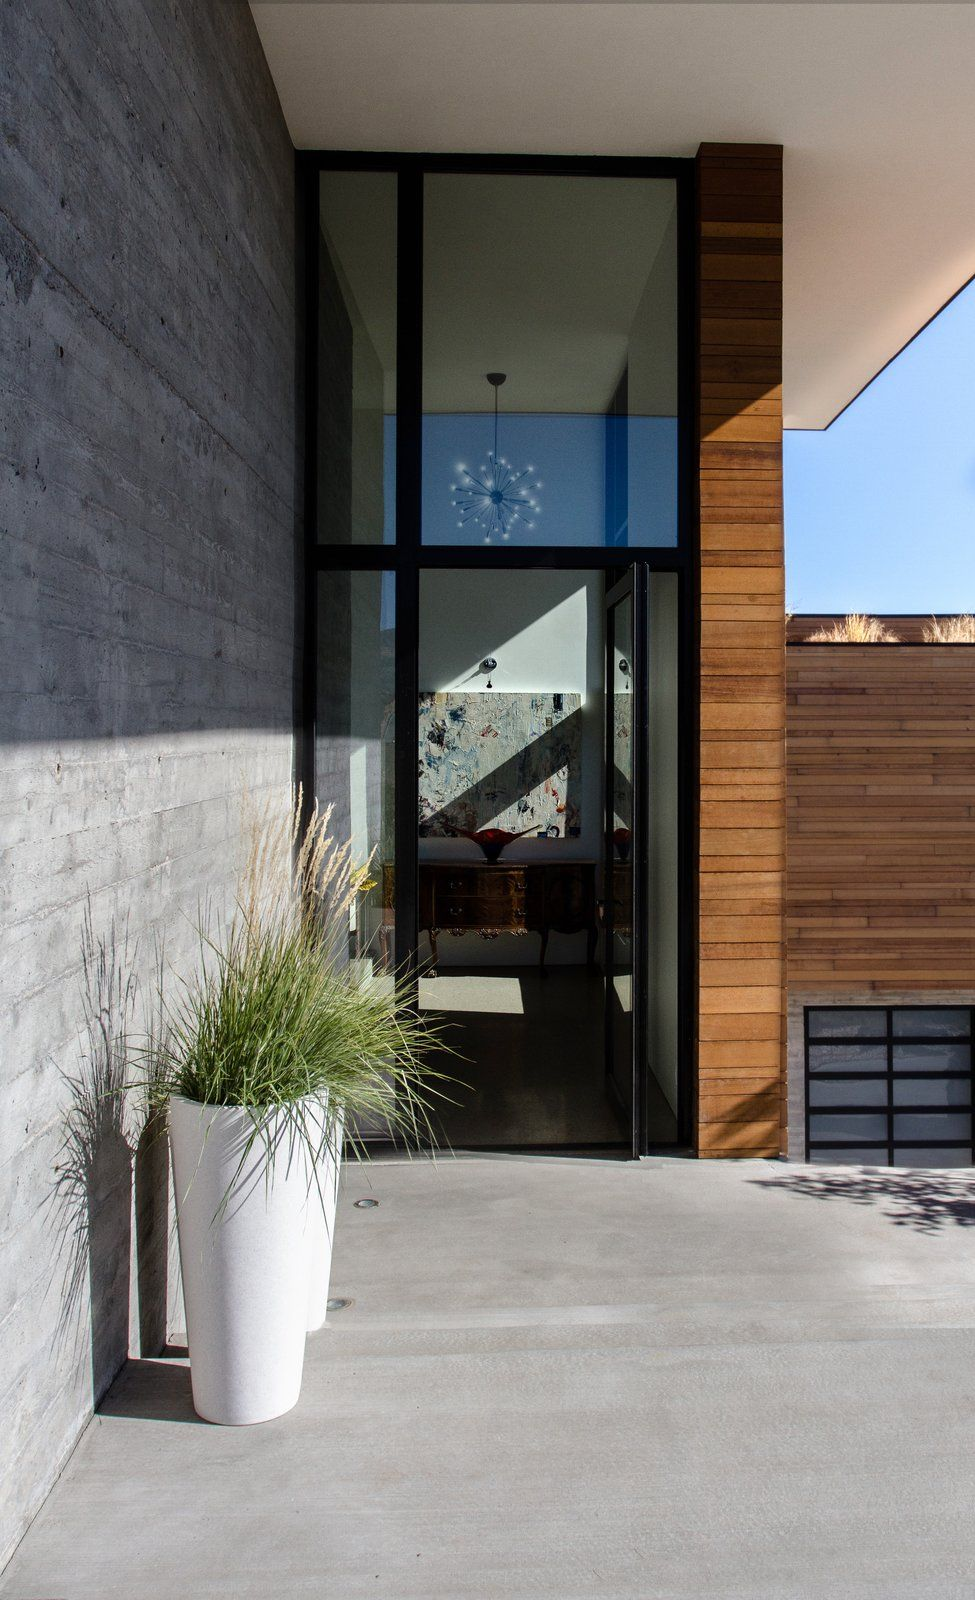 The combination of concrete, wood and glass is very fitting for a modern house such as this